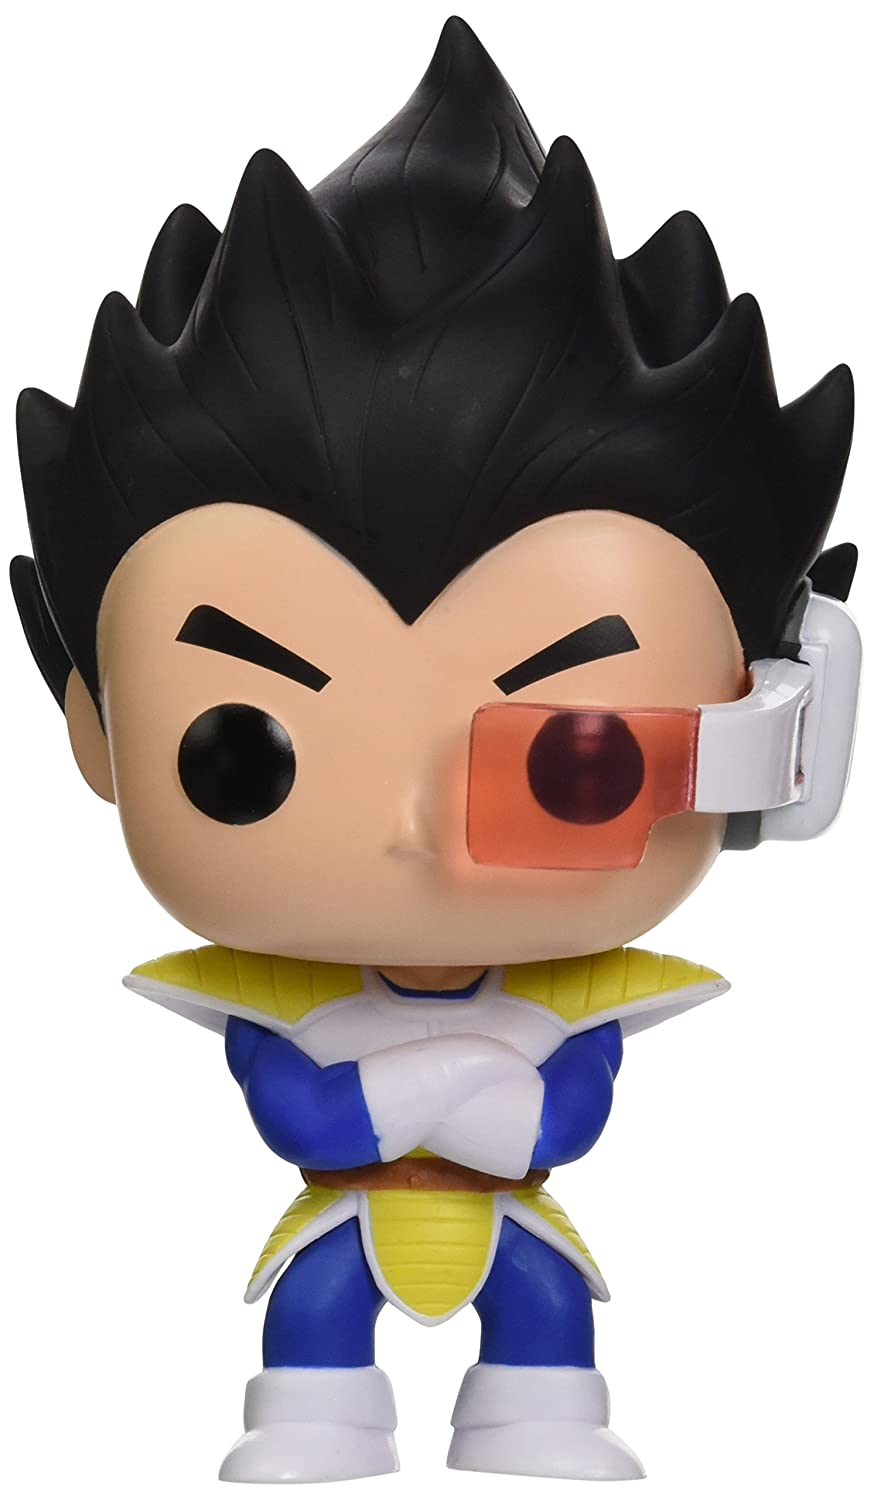 Funko POP Anime Dragonball Z Vegeta Action Figure